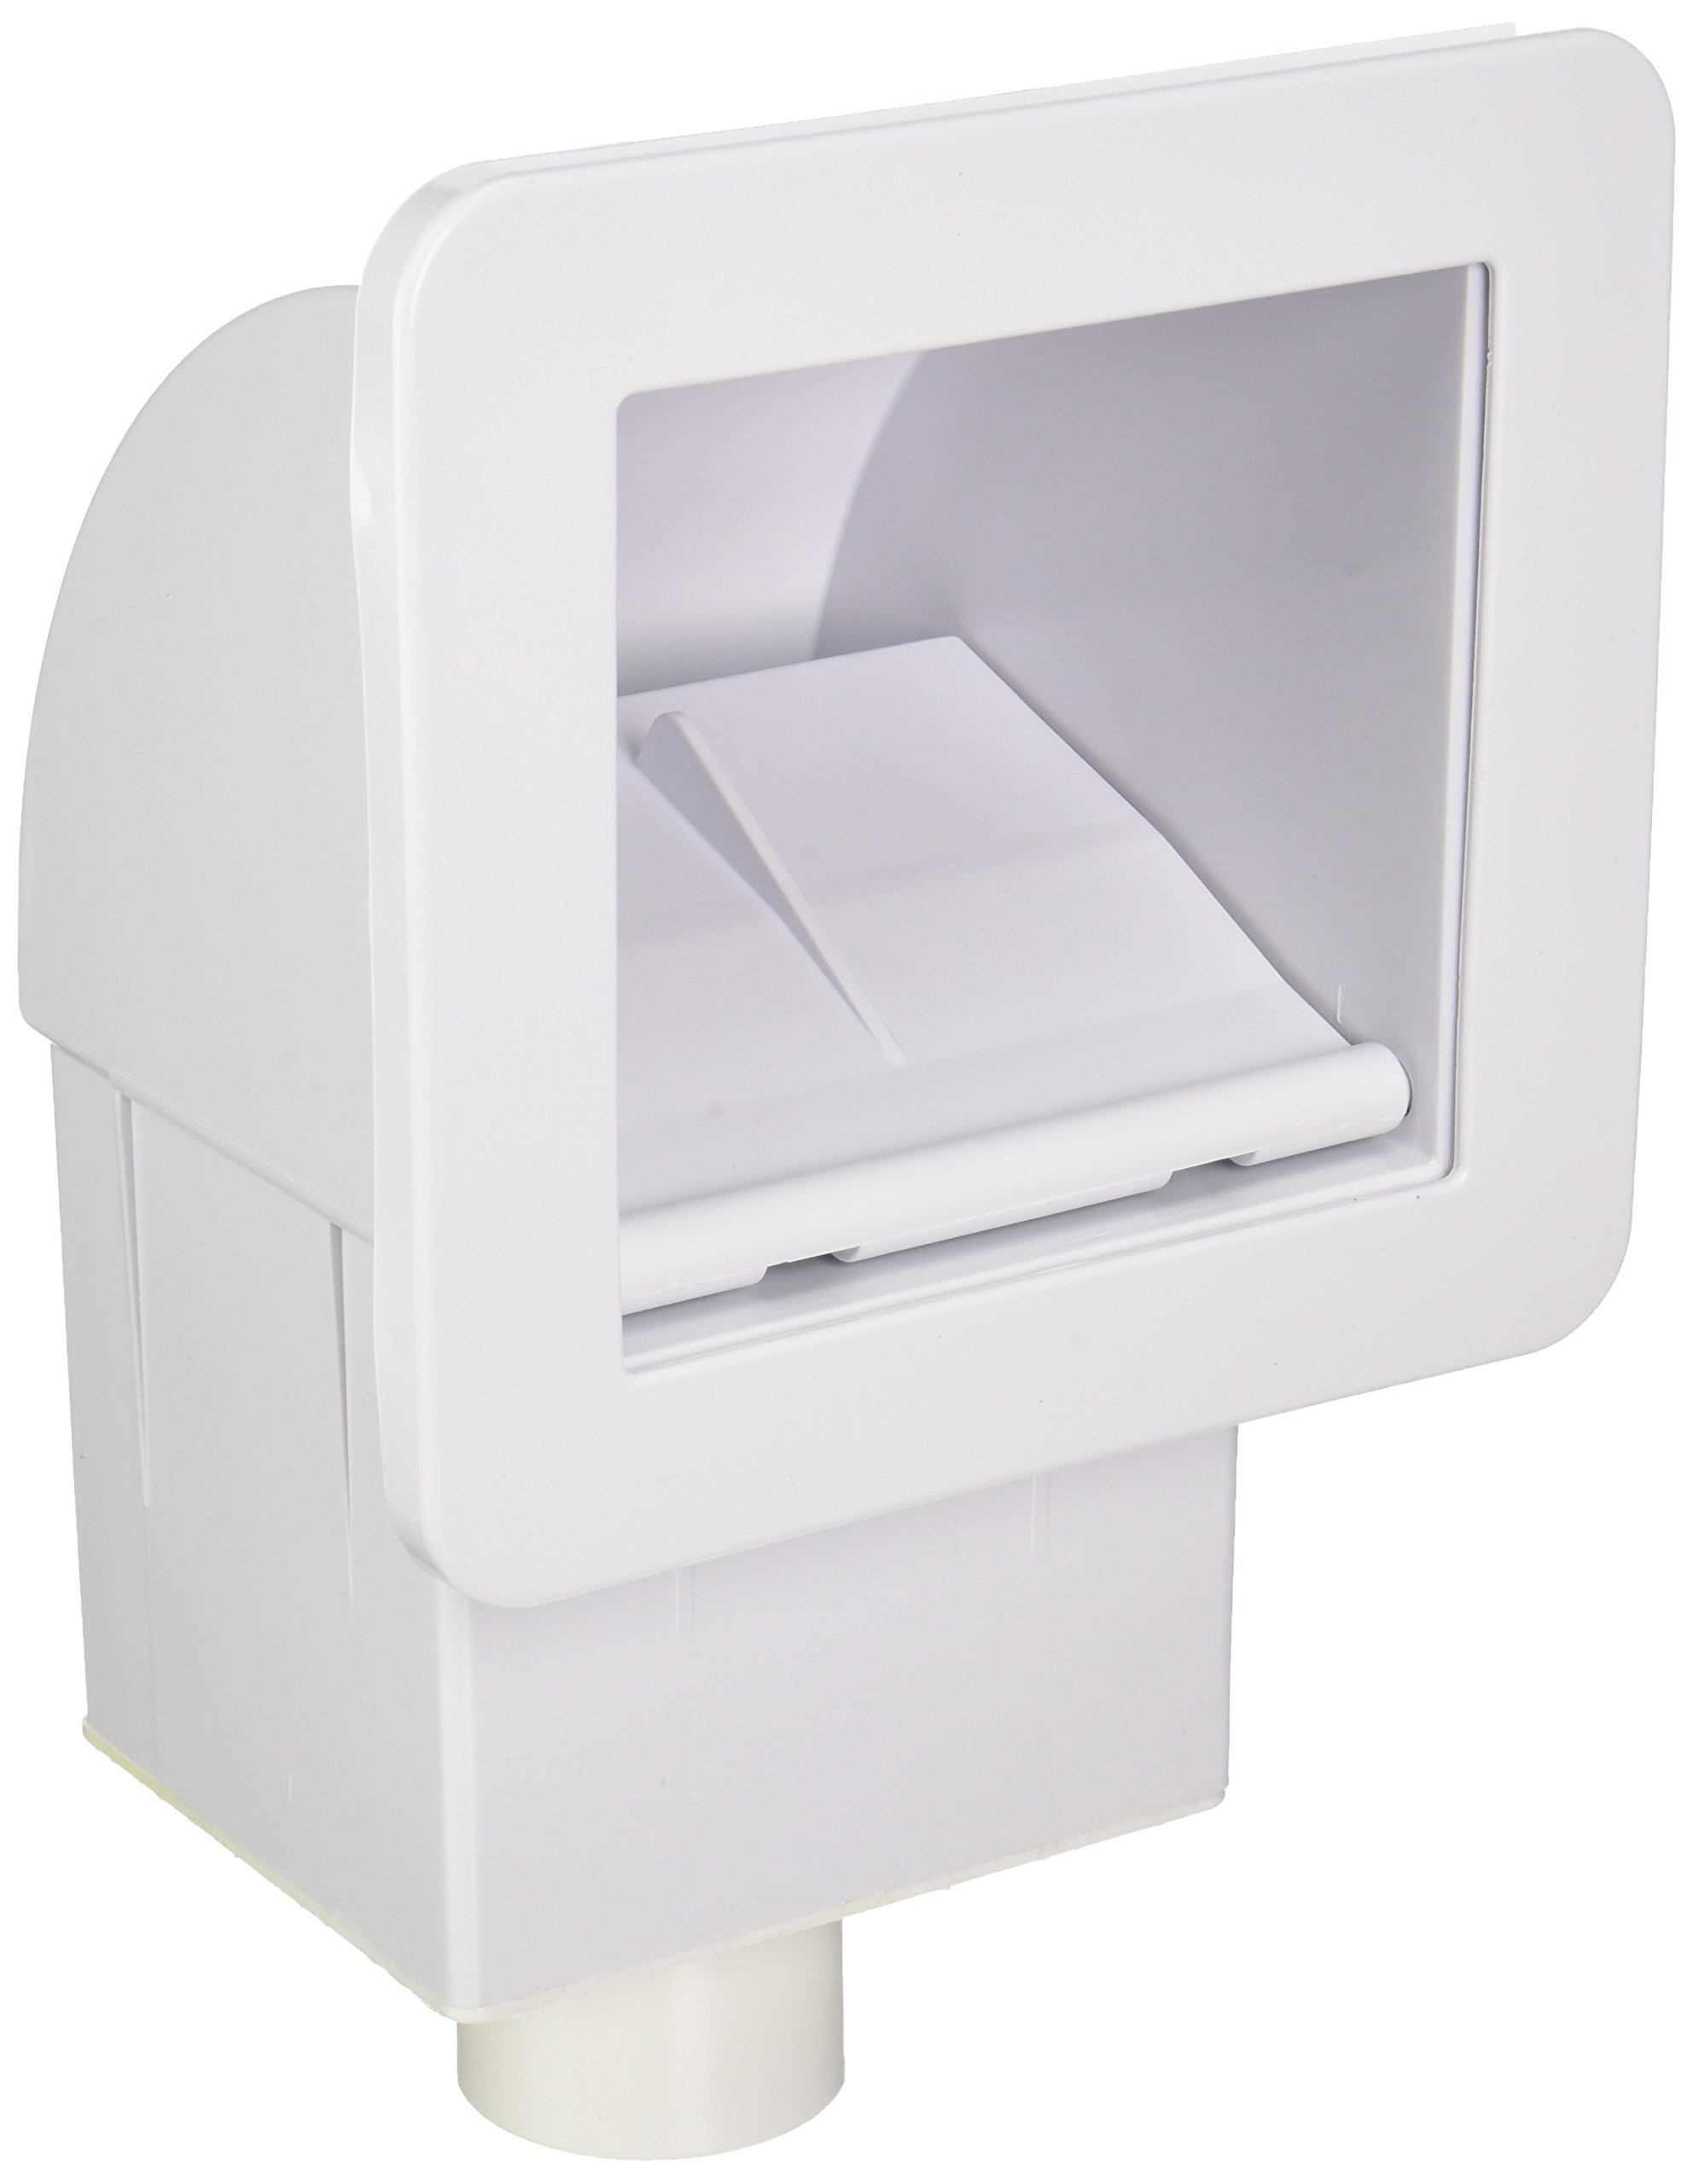 Hayward SP1099S Front Access Spa Skimmer